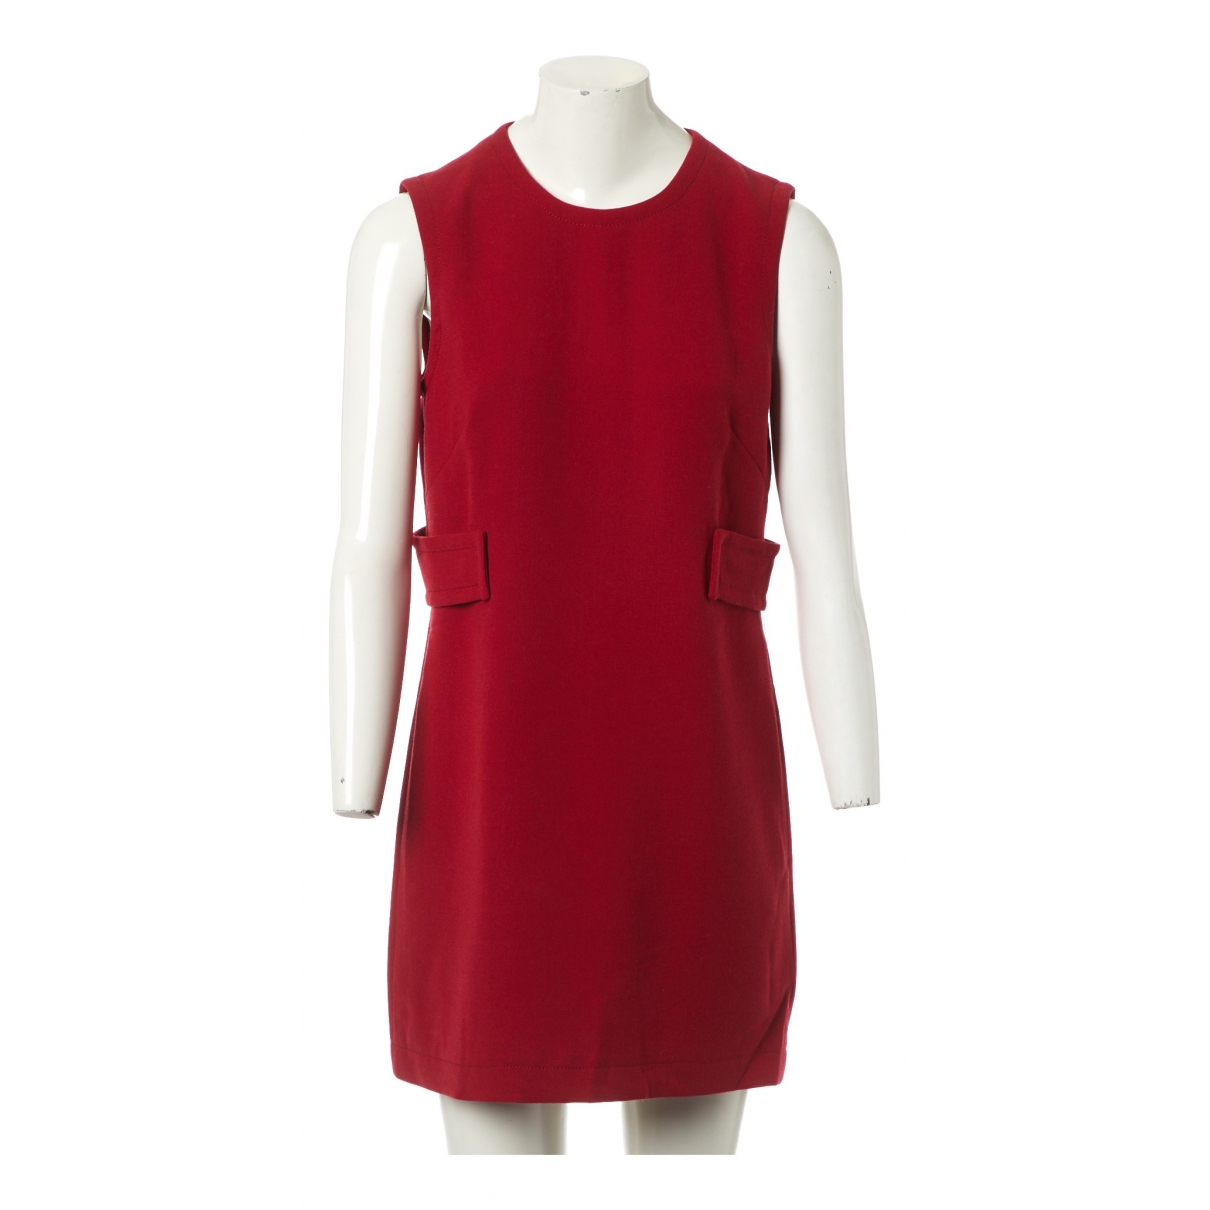 Prada \N Red Wool dress for Women 42 IT